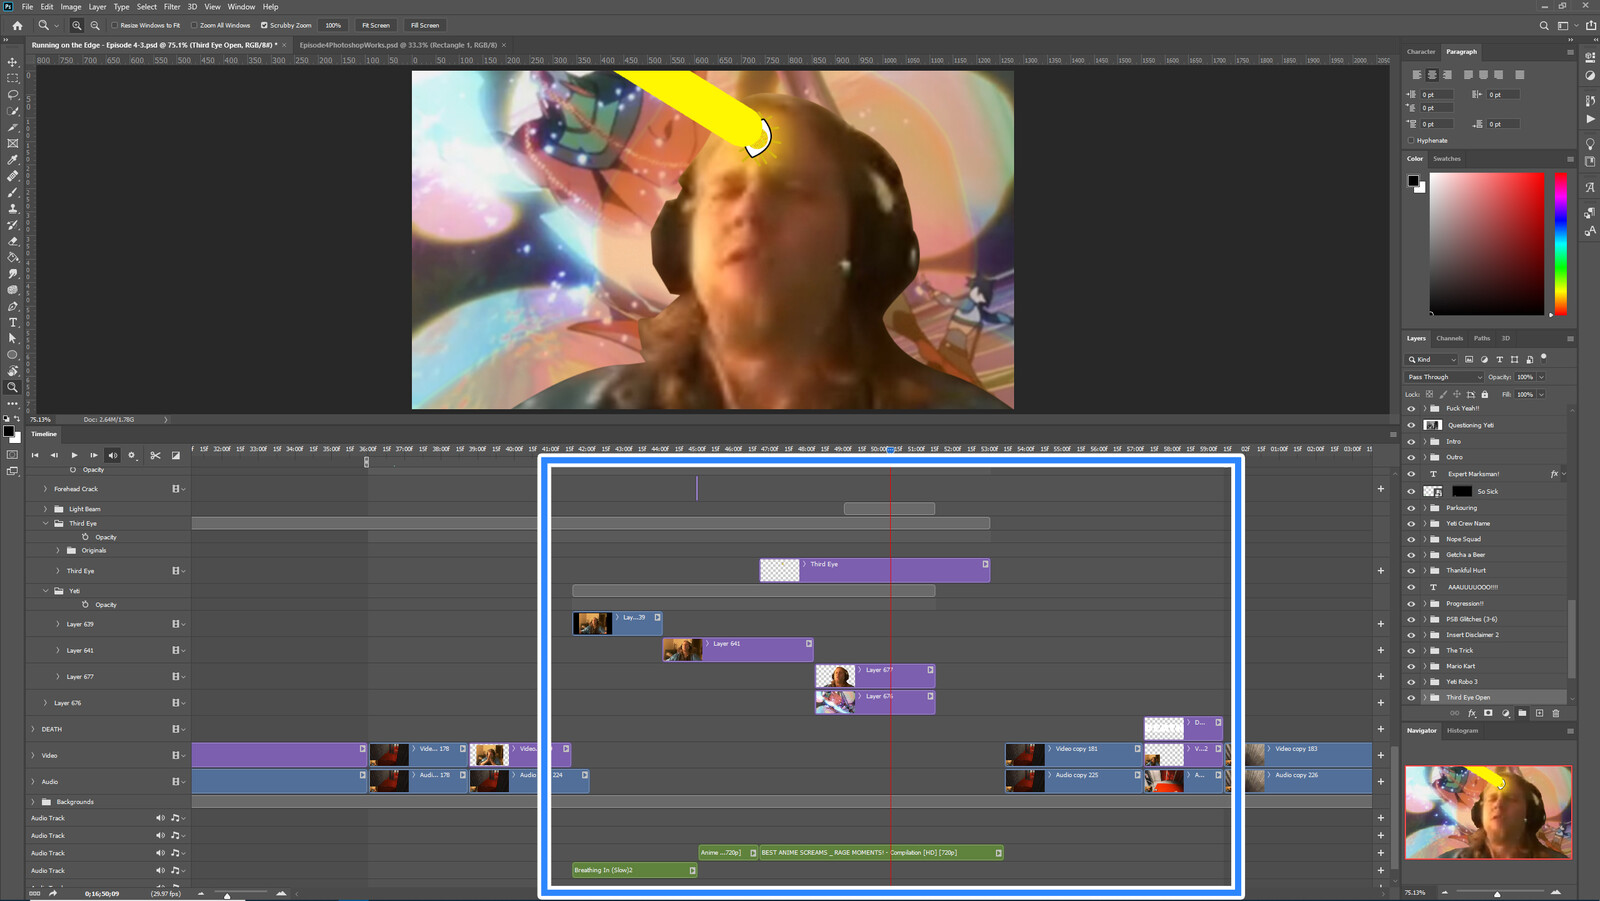 """The """"Third Eye Death"""" visual effect within Photoshop video editor"""